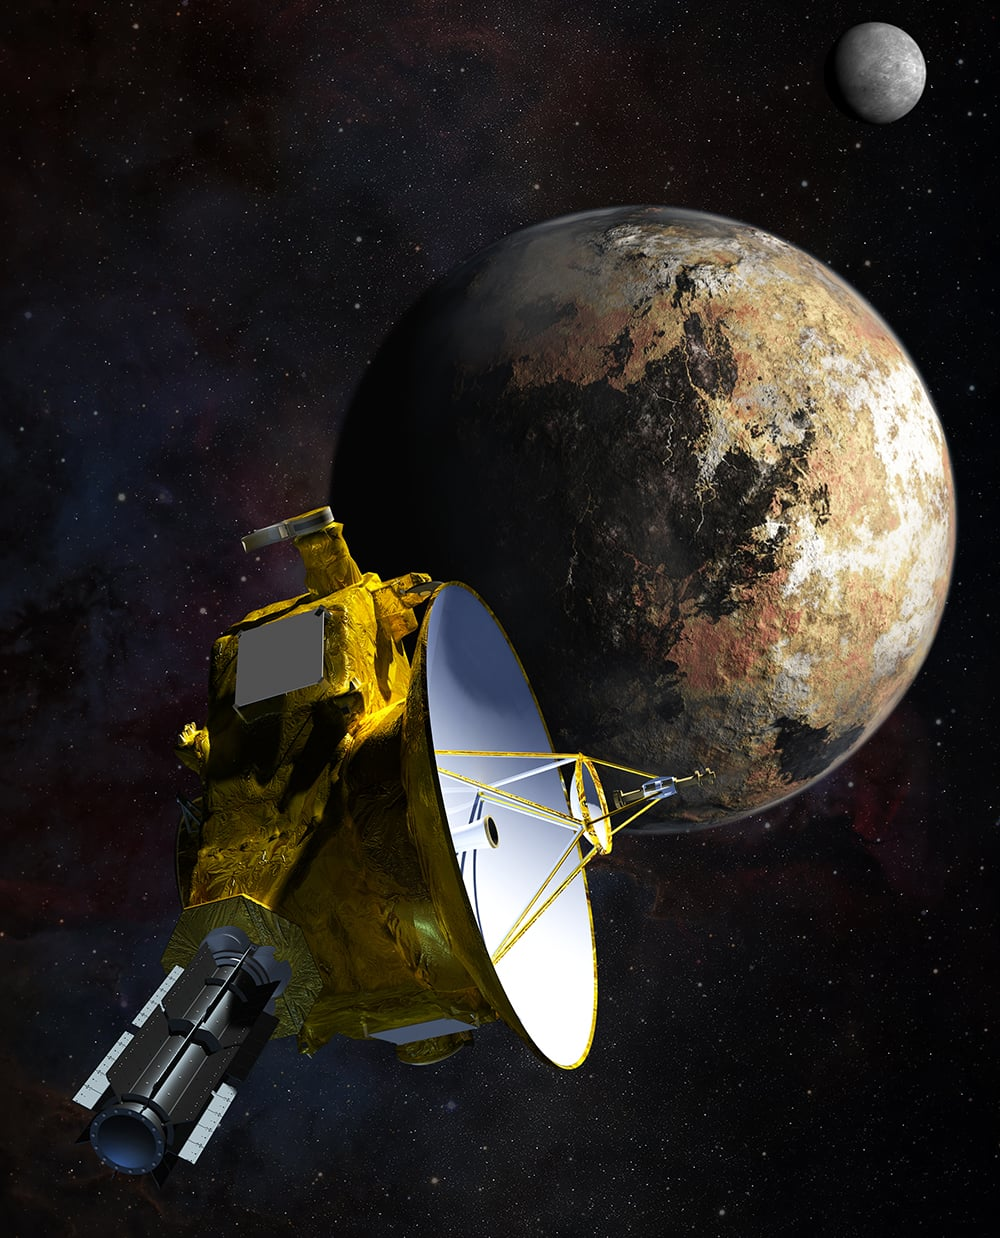 An artist's depiction of the New Horizons'proximity to Pluto and Charon. (wikipedia)